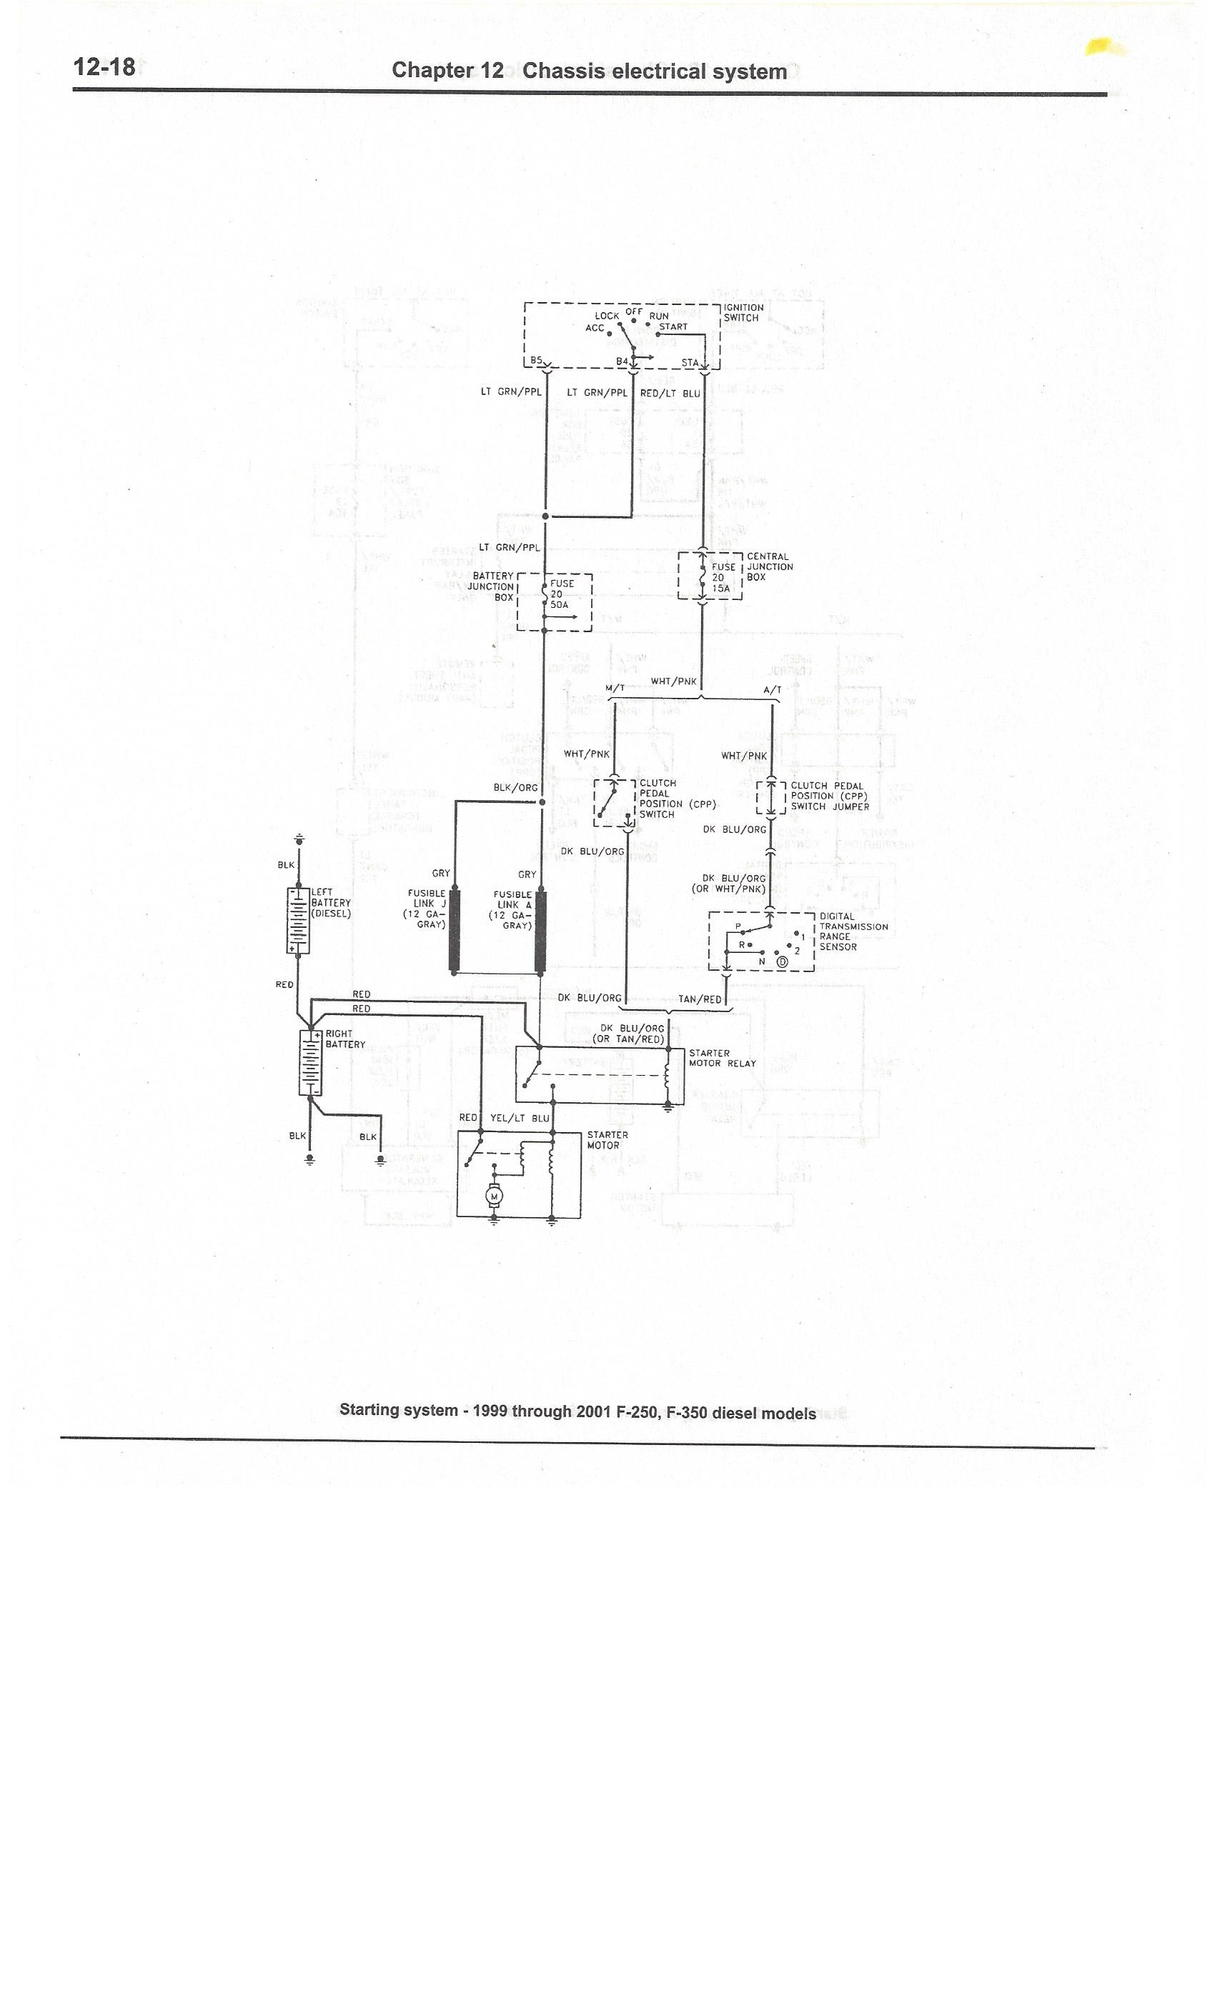 home doorbell wiring diagram with Revbase Wiring Diagrams on Diode Voltage For Doorbell further Basic Bathroom Plumbing Rough In also Dmc34wire Diagram 16 as well 81 Chev Wiring Diagram additionally Door Bell Extension.